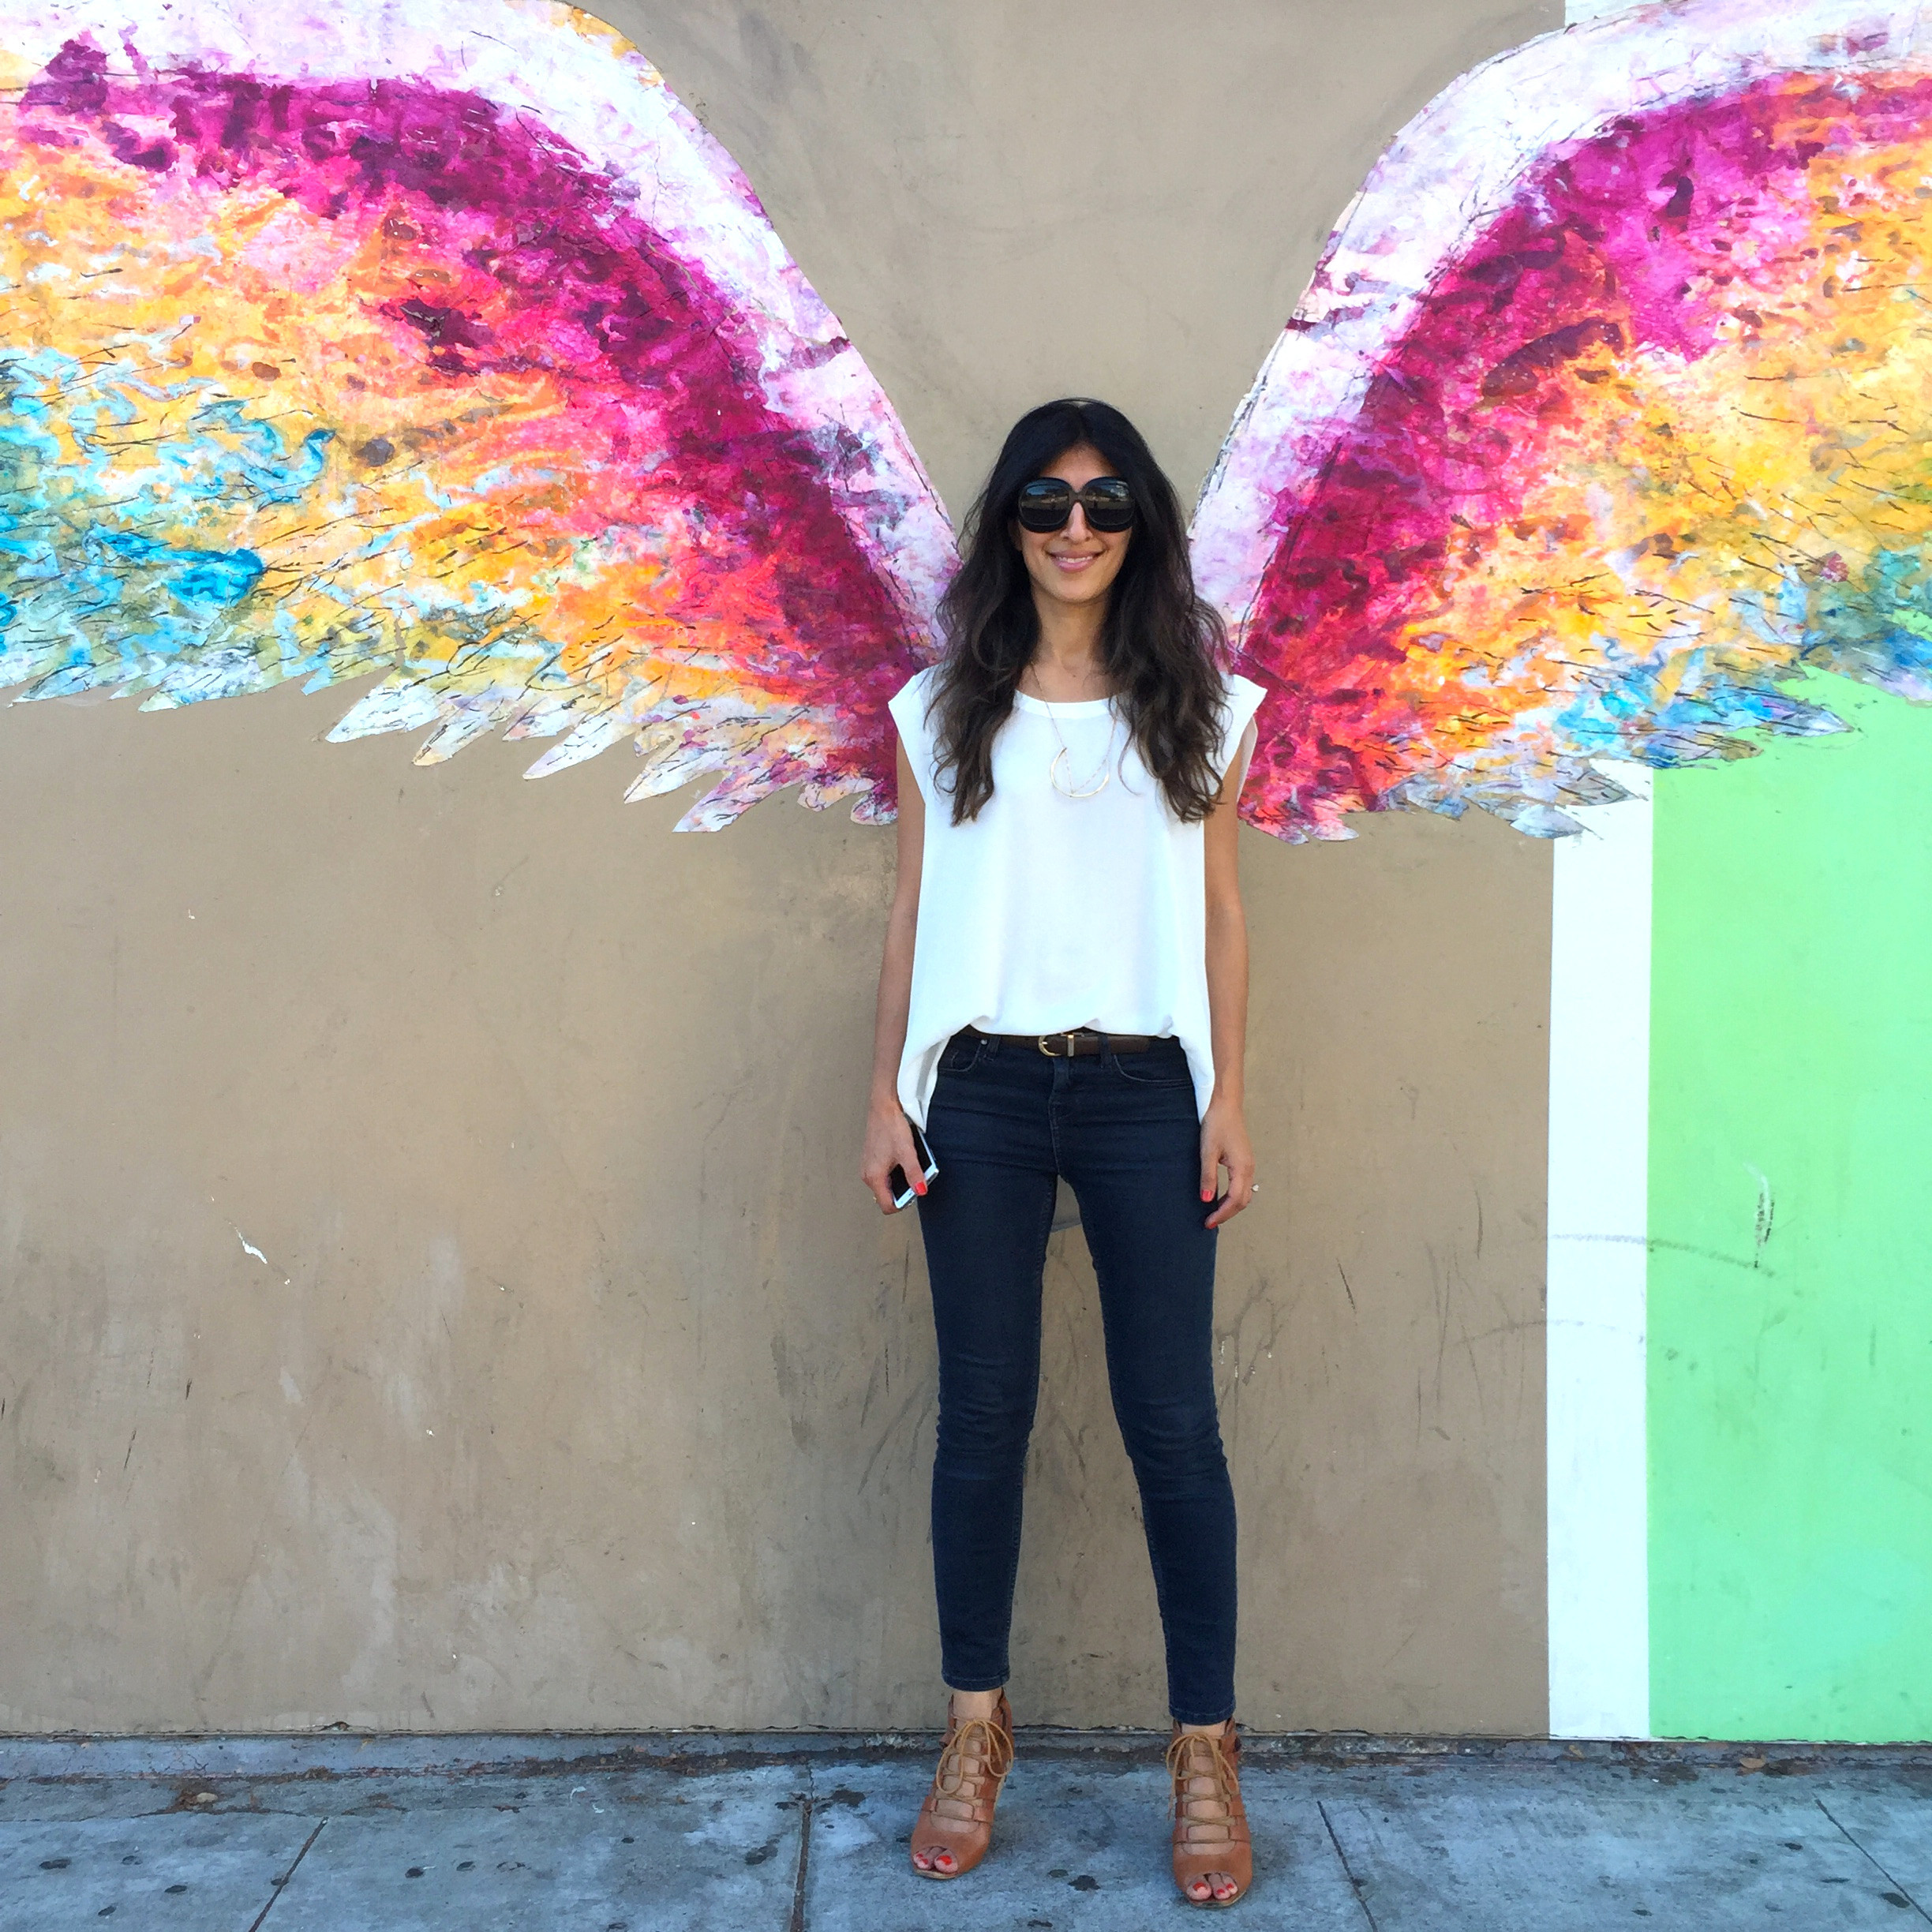 Angel wings in the City of Angels - by Colette Miller off Santa Monica Blvd.